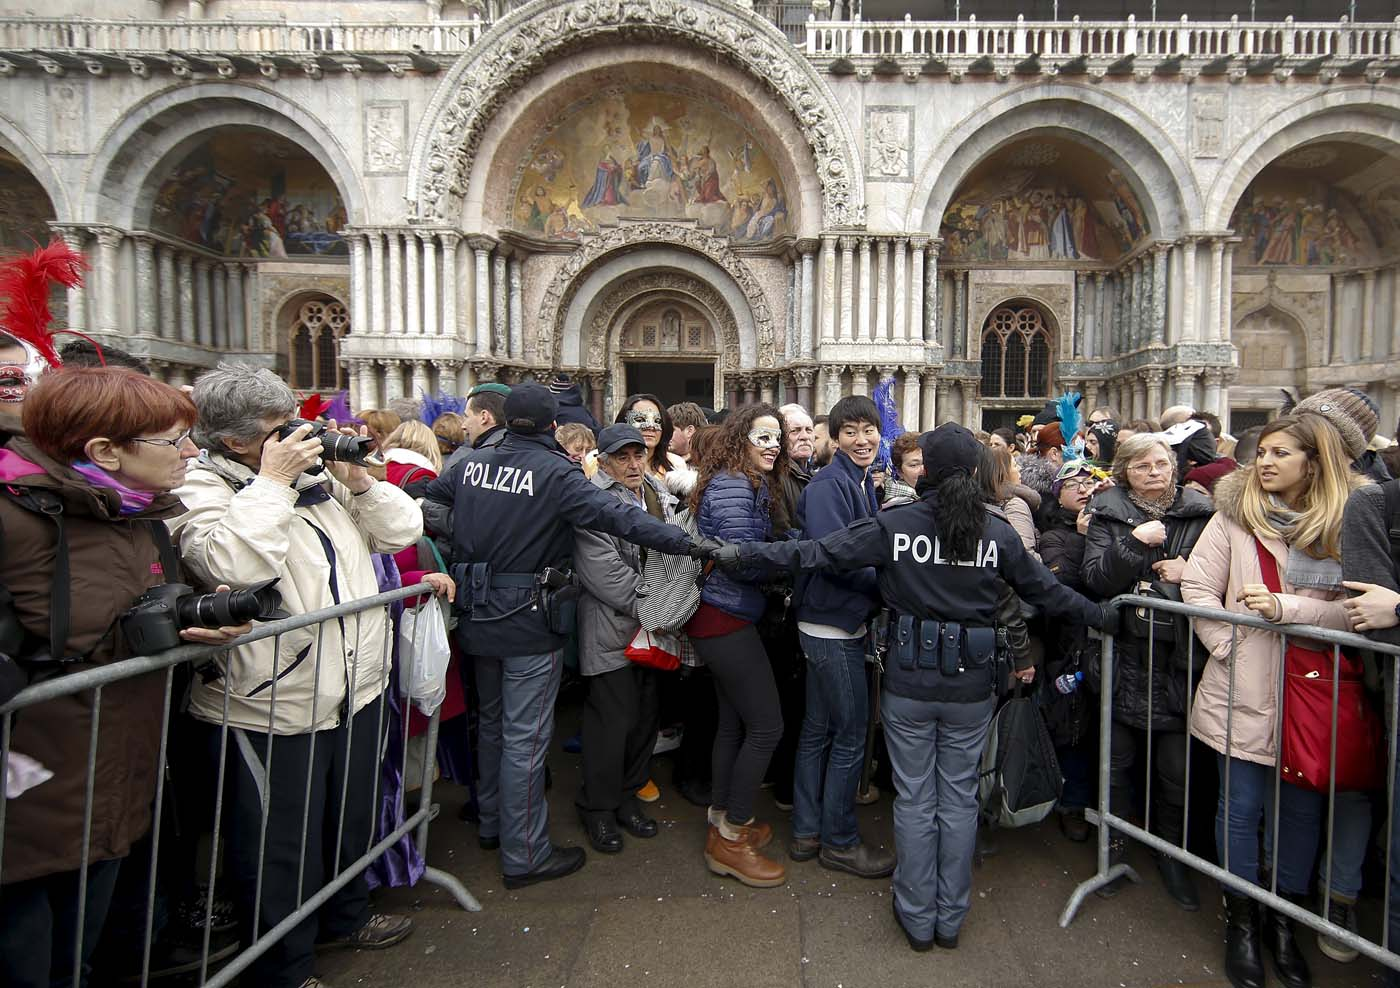 Italian policemen patrol as tourists arrive at San Marco Piazza during the Venice Carnival, January 31, 2016. REUTERS/Alessandro Bianchi